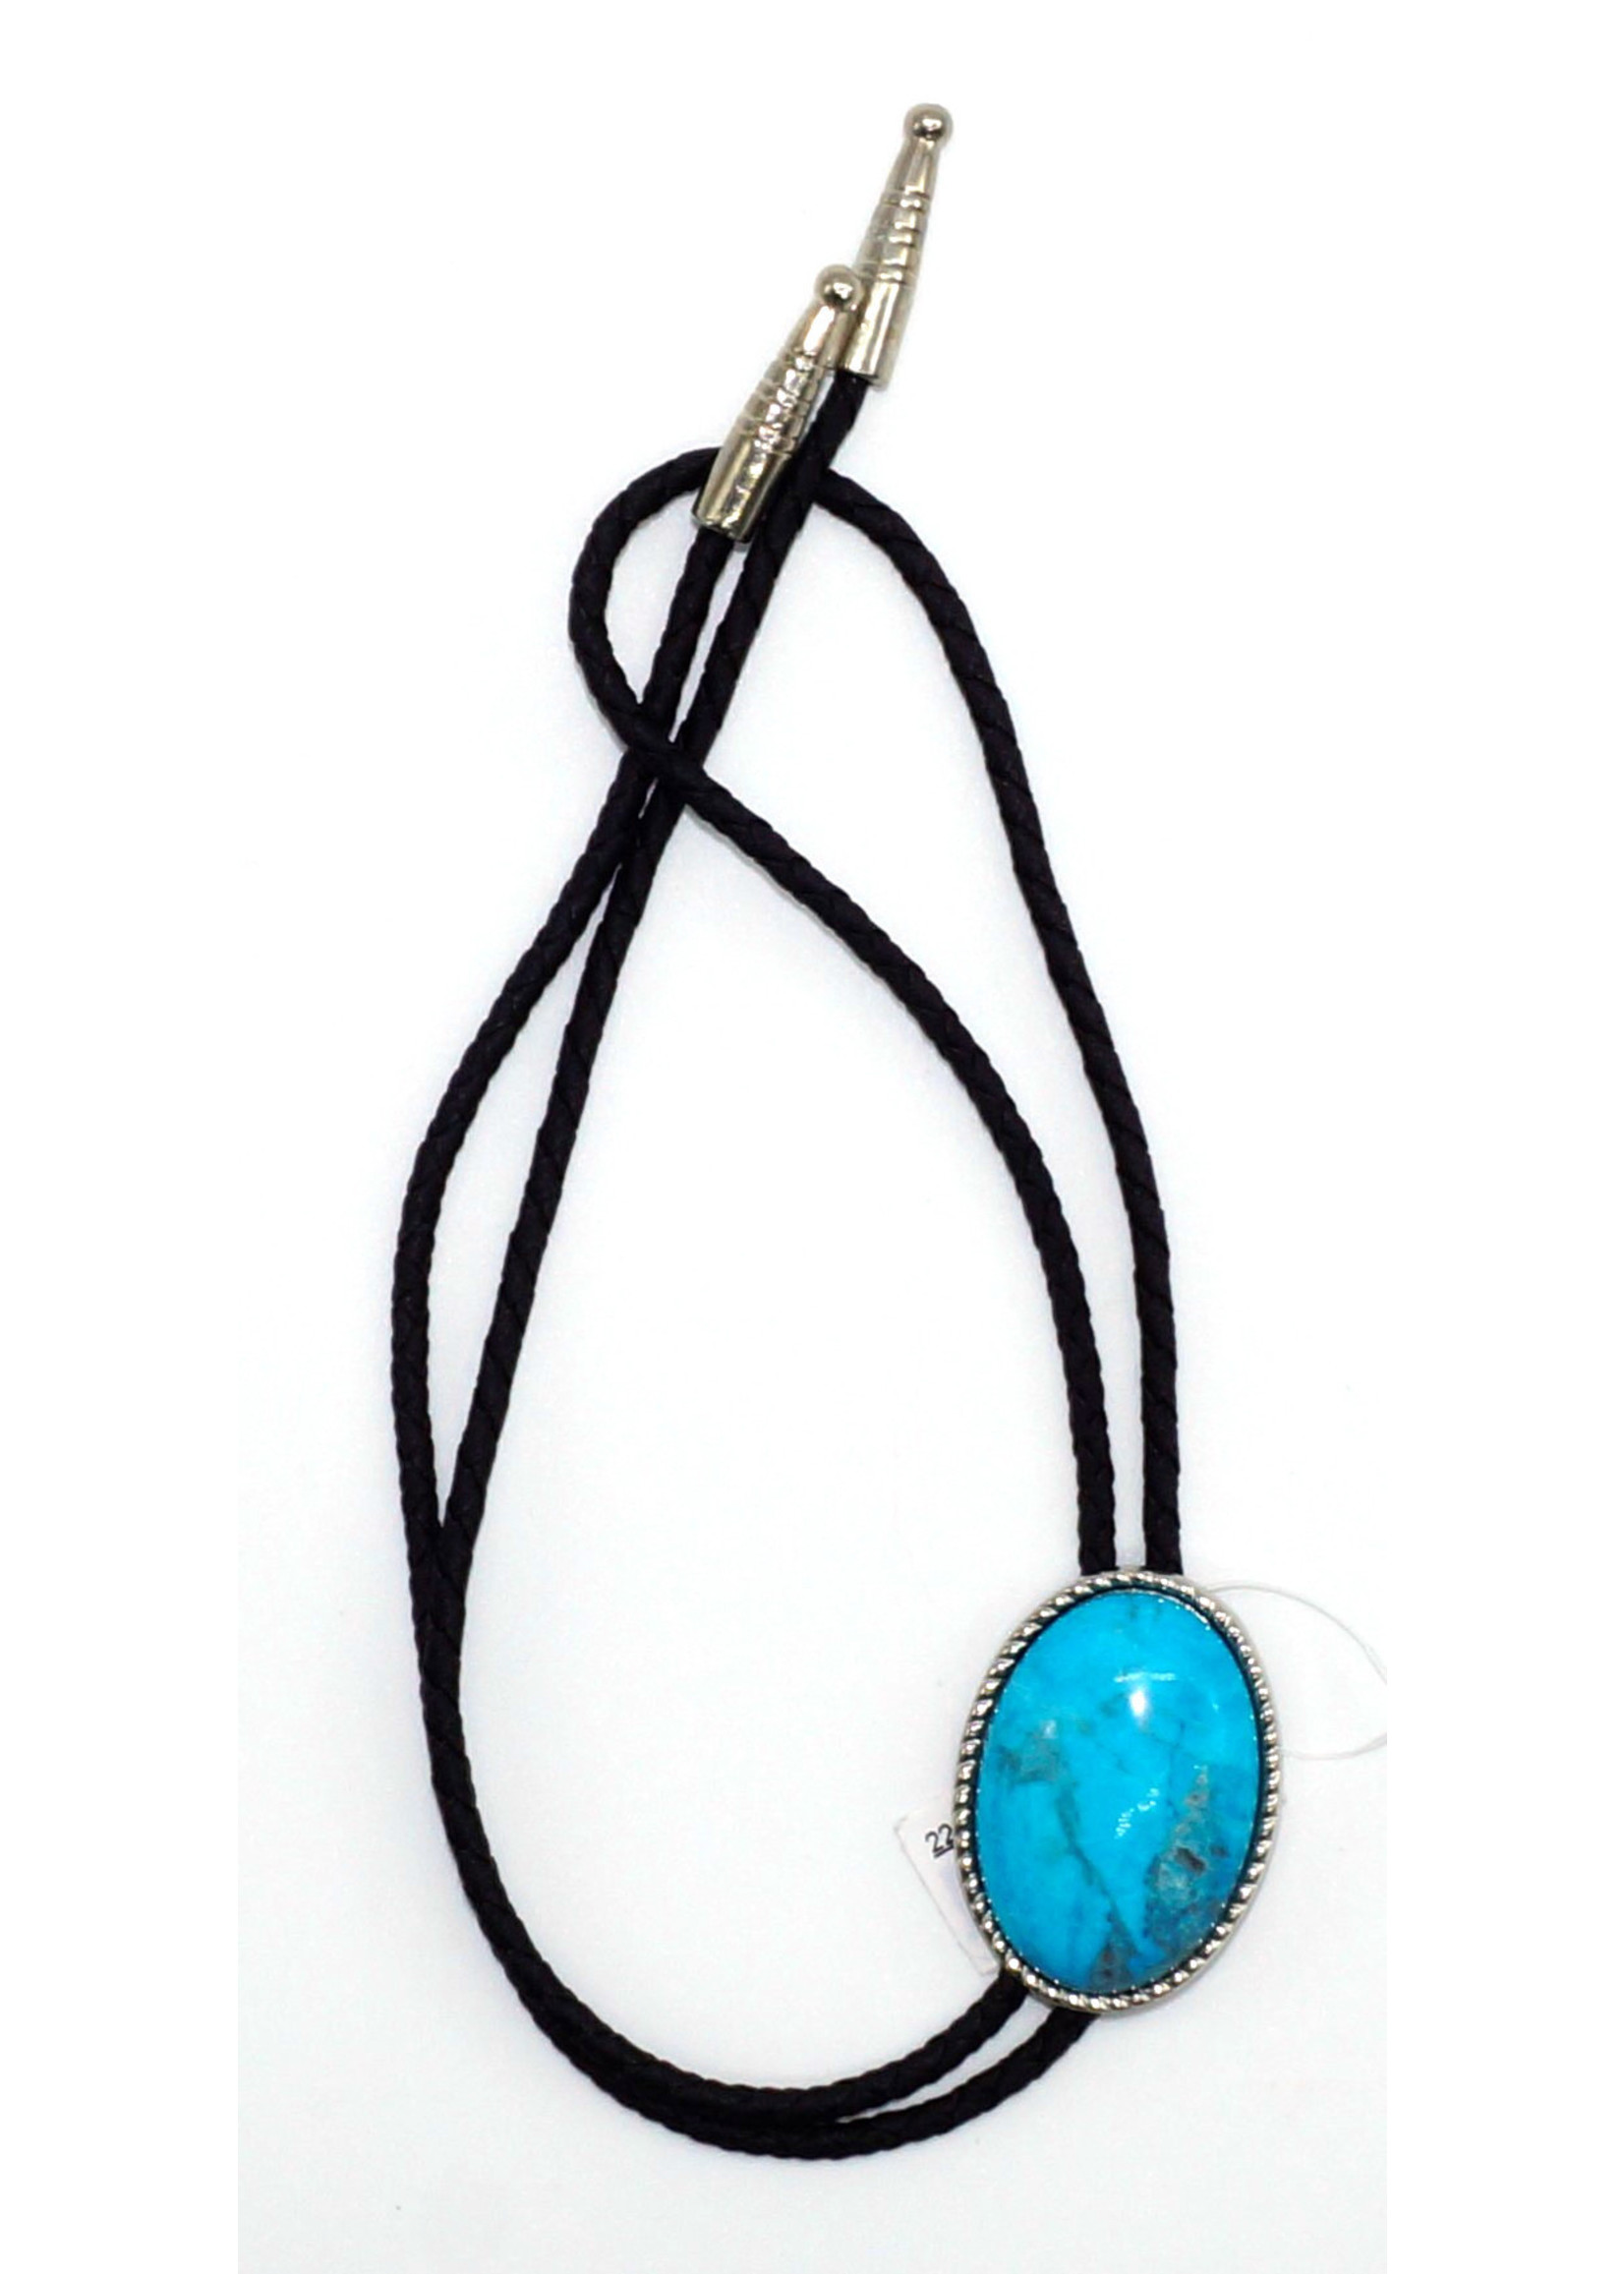 M&F Turquoise Western Double S Bolo Tie